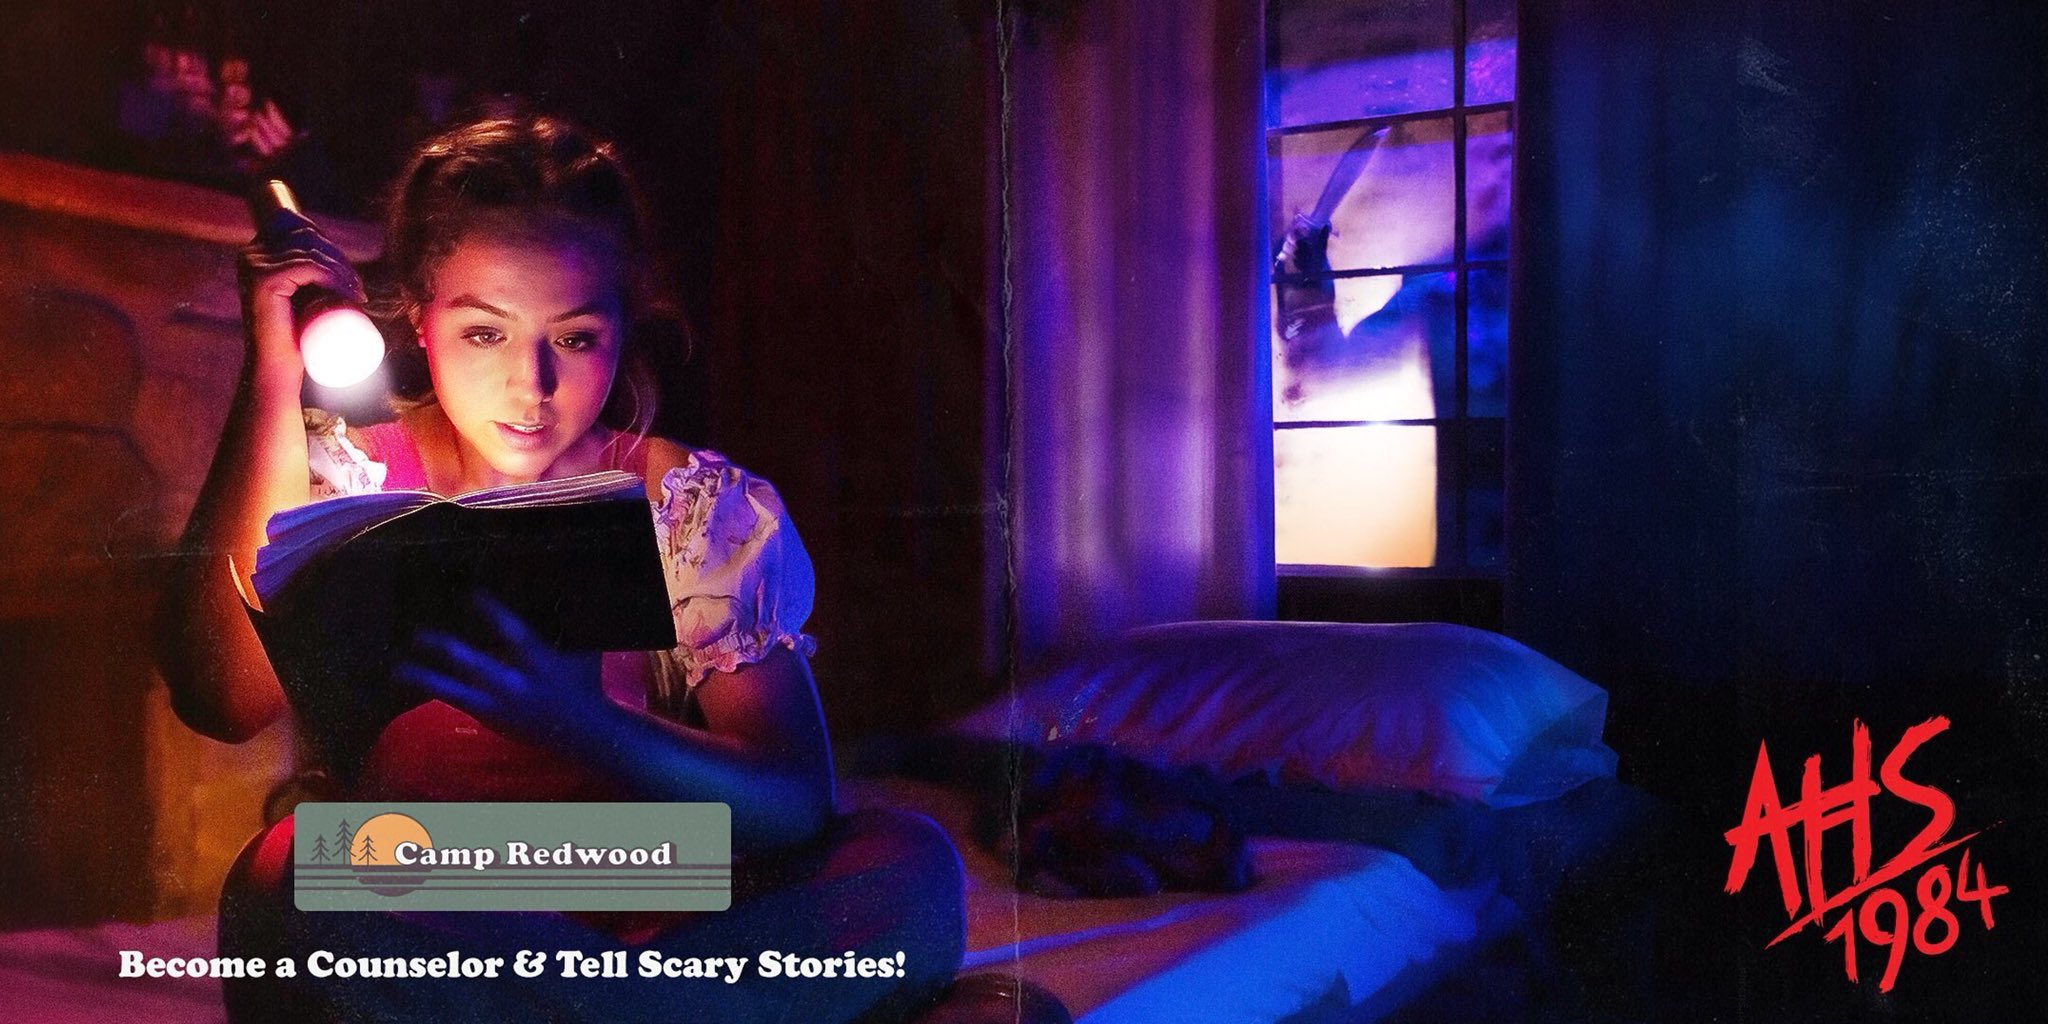 S9 Counselor Poster 01 Tell Scary Stories.jpeg